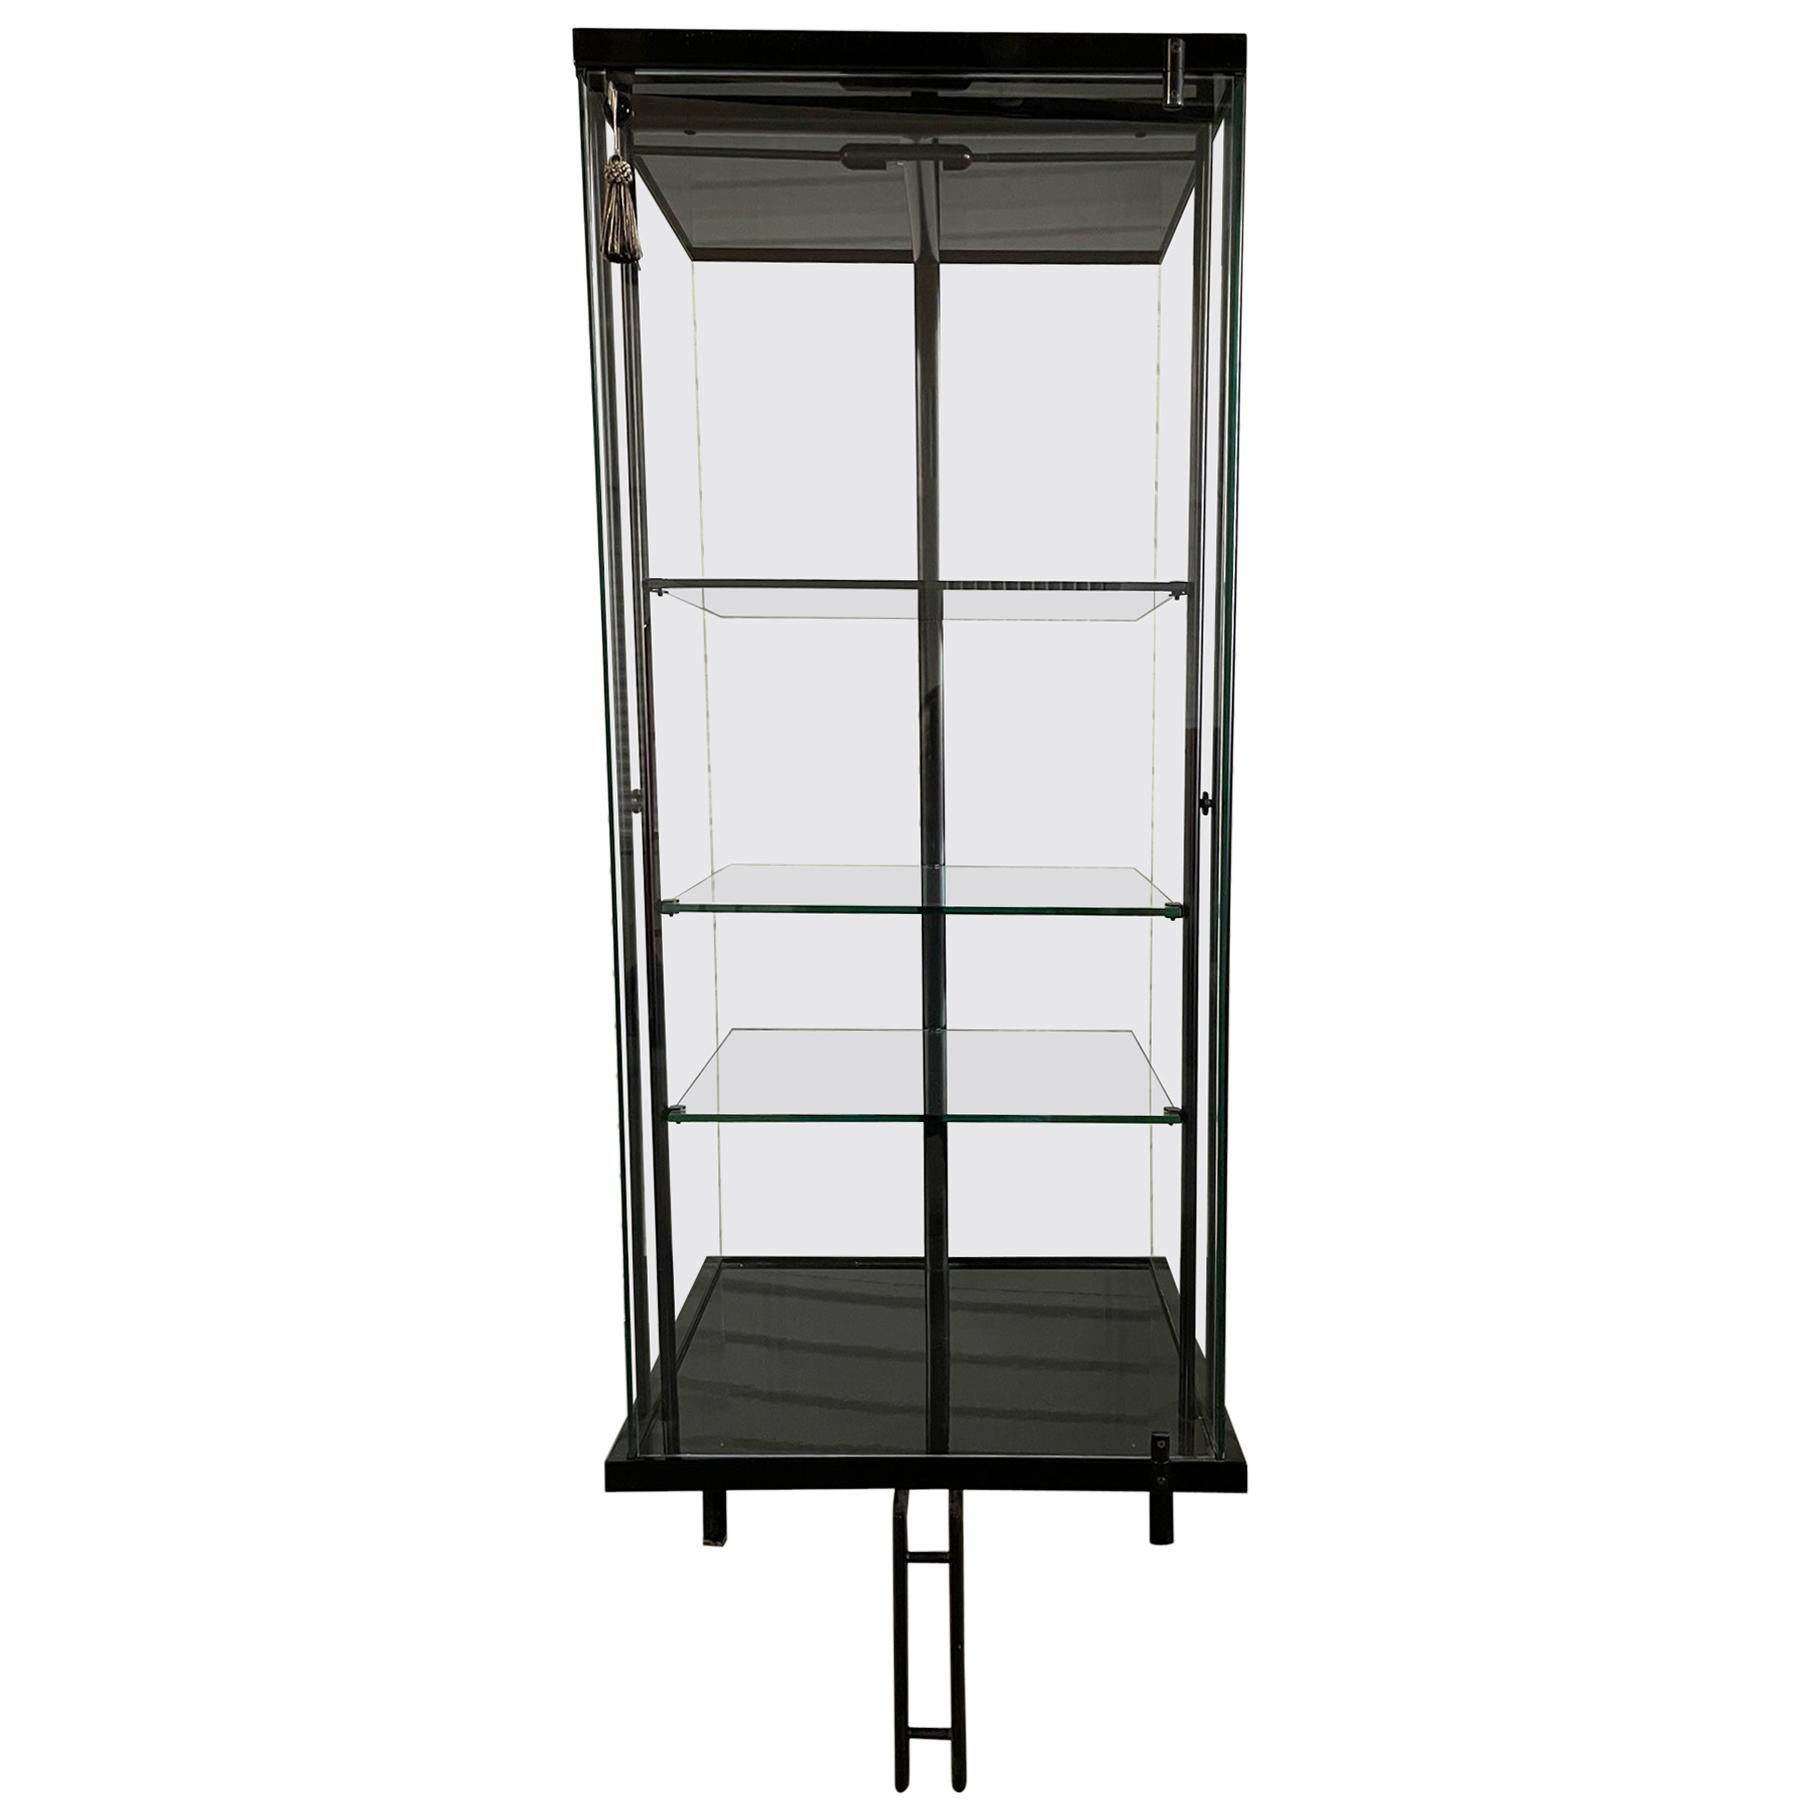 Roche Bobois Contemporary Lacquer and Glass Display Cabinet, 20th Century